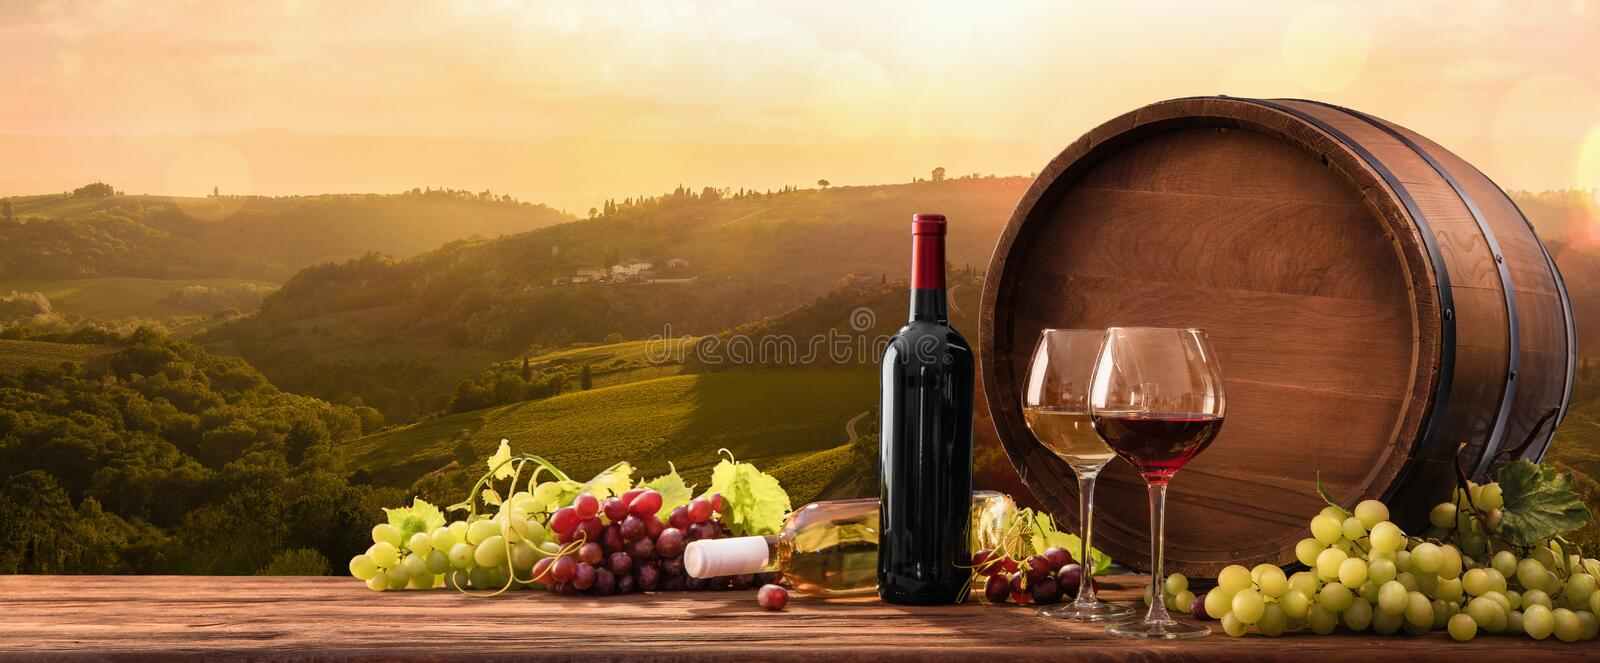 Wineglasses With Grapes And Barrel On A Sunny Background stock photography